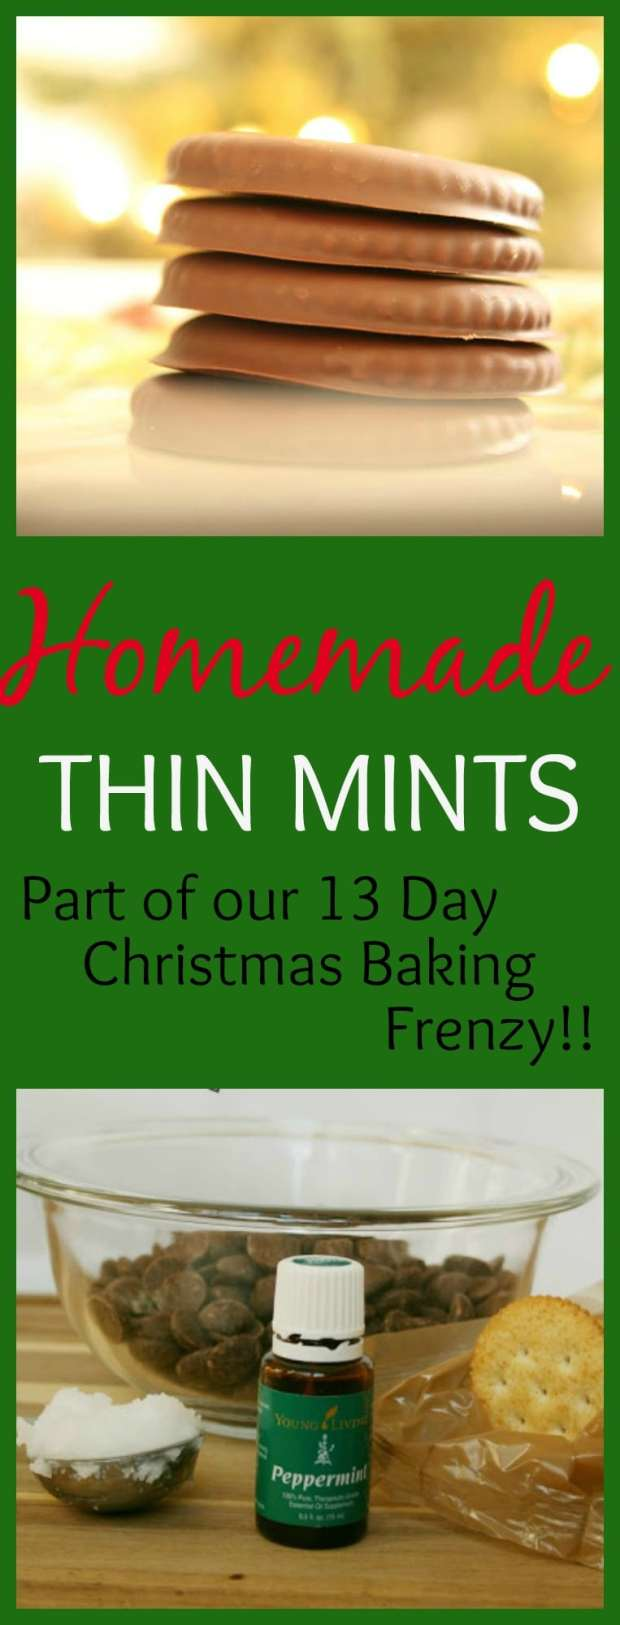 Homemade Thin Mint Recipe- A simple, 4-ingredient recipe for everyone's favorite cookie! Part of our 13 Days of Christmas Baking !